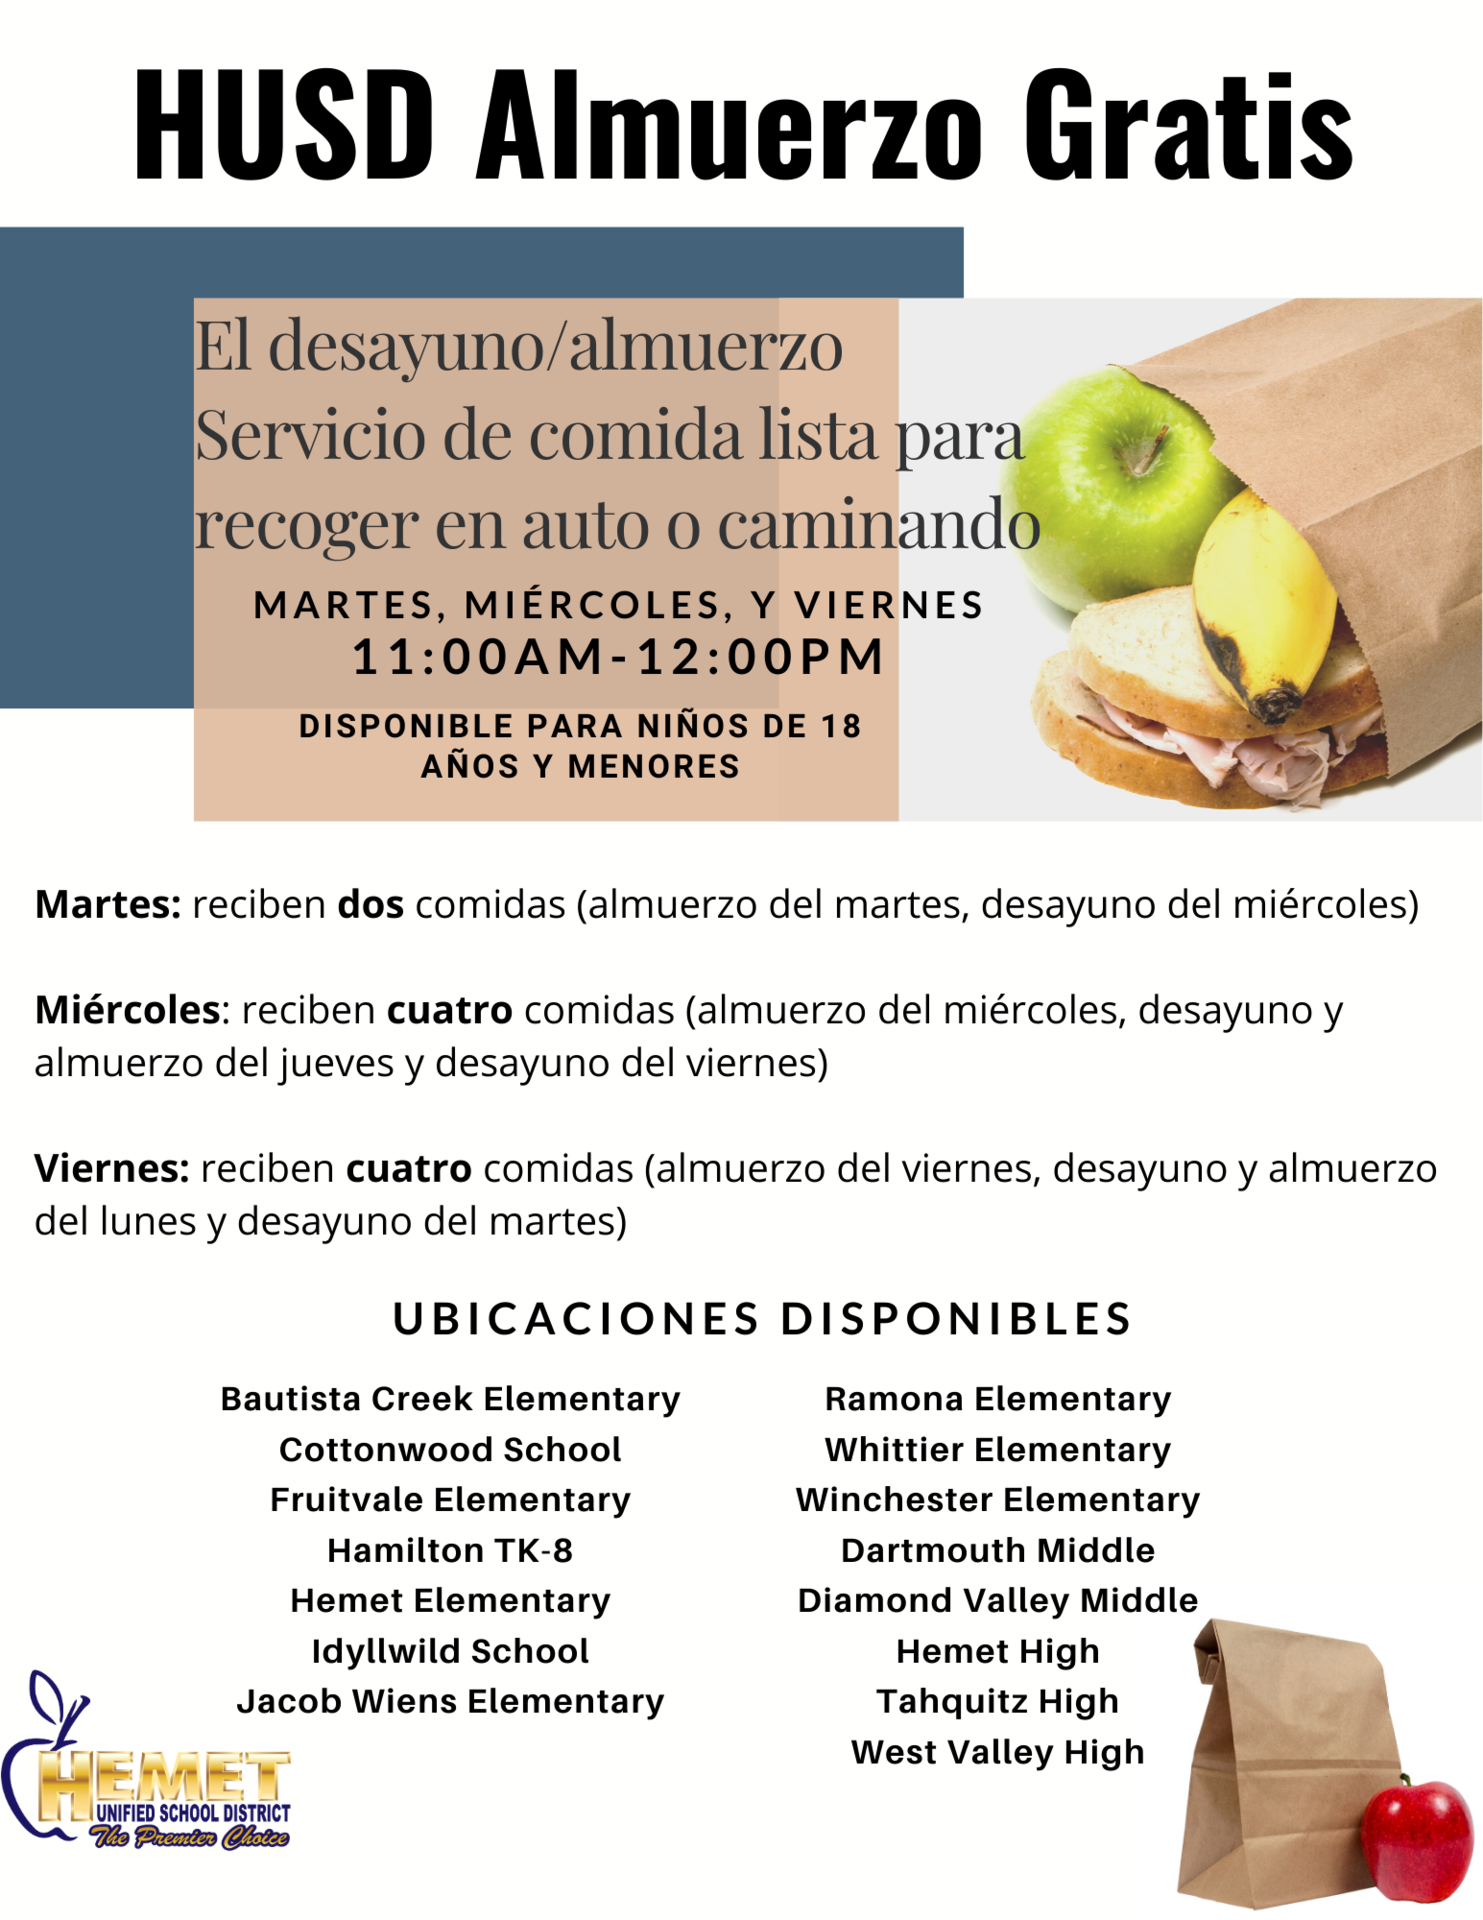 Meal Service Information in Espanol